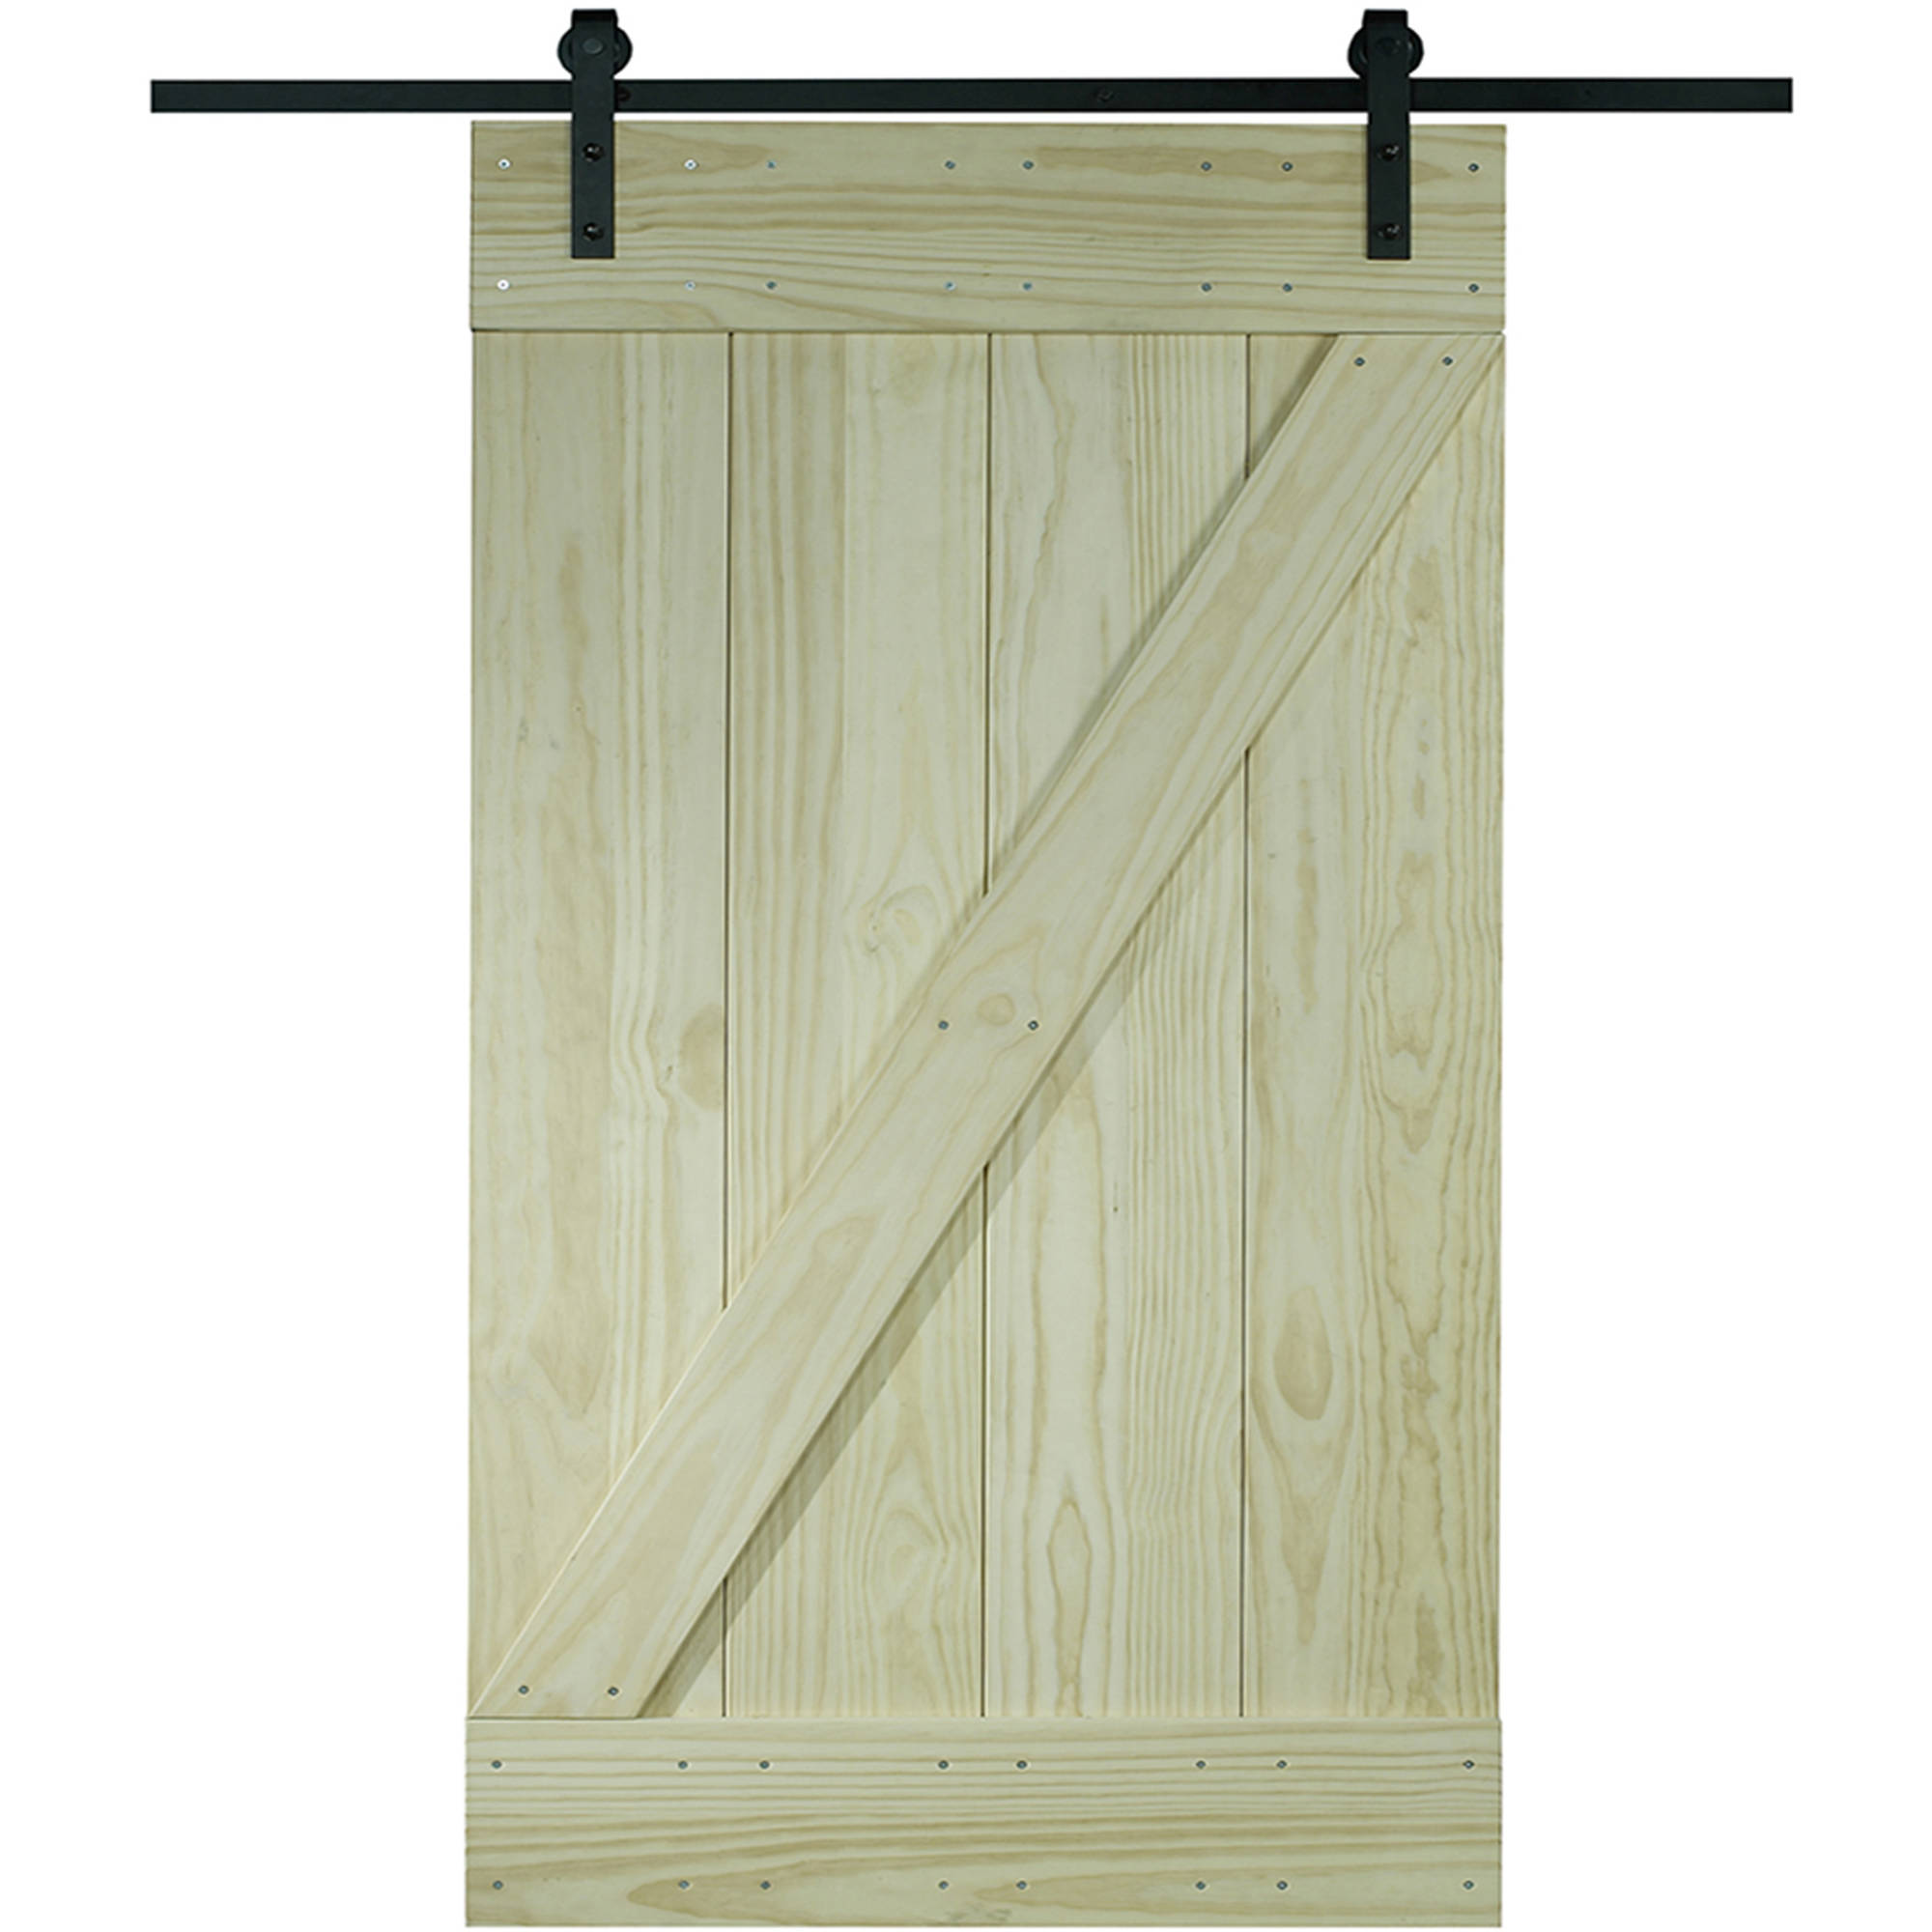 Wood Barn Door Kit 30 X 80 Unfinished Pine Z Design Walmart